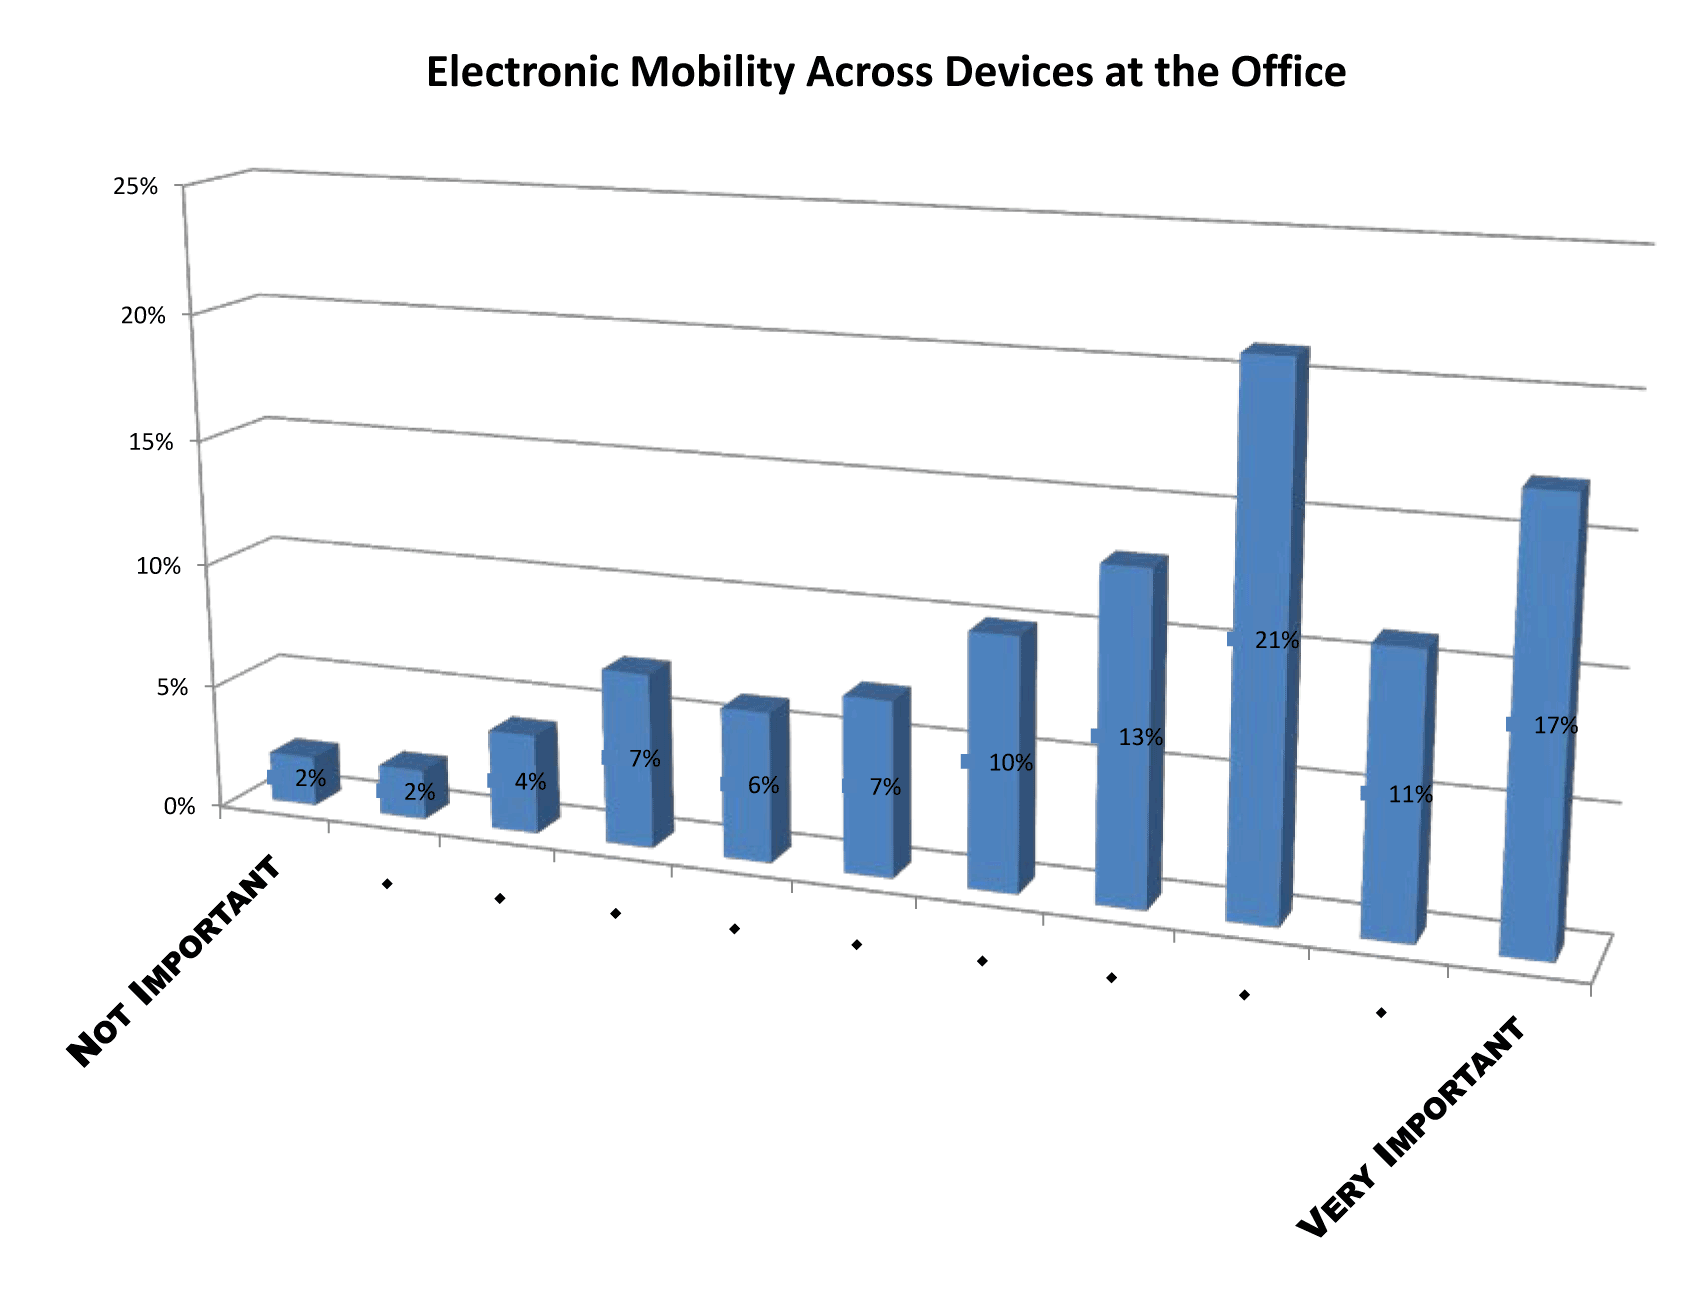 electronic mobility across office devices survey